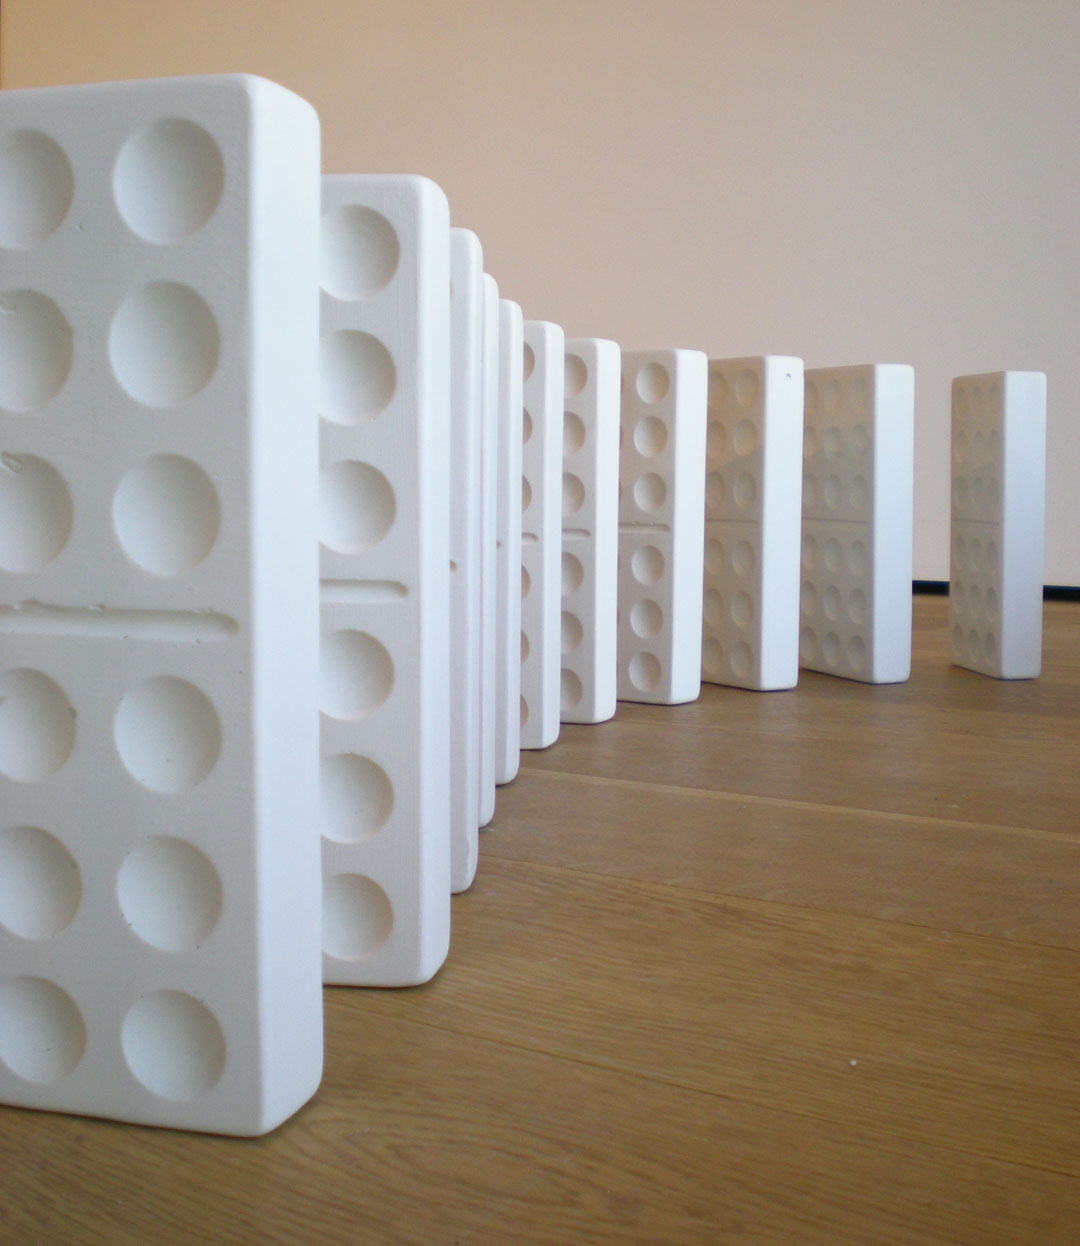 Kelli Rae Adams: Mizaru, Kikazaru, Iwazaru: Unfired porcelain, dimensions variable (2010)